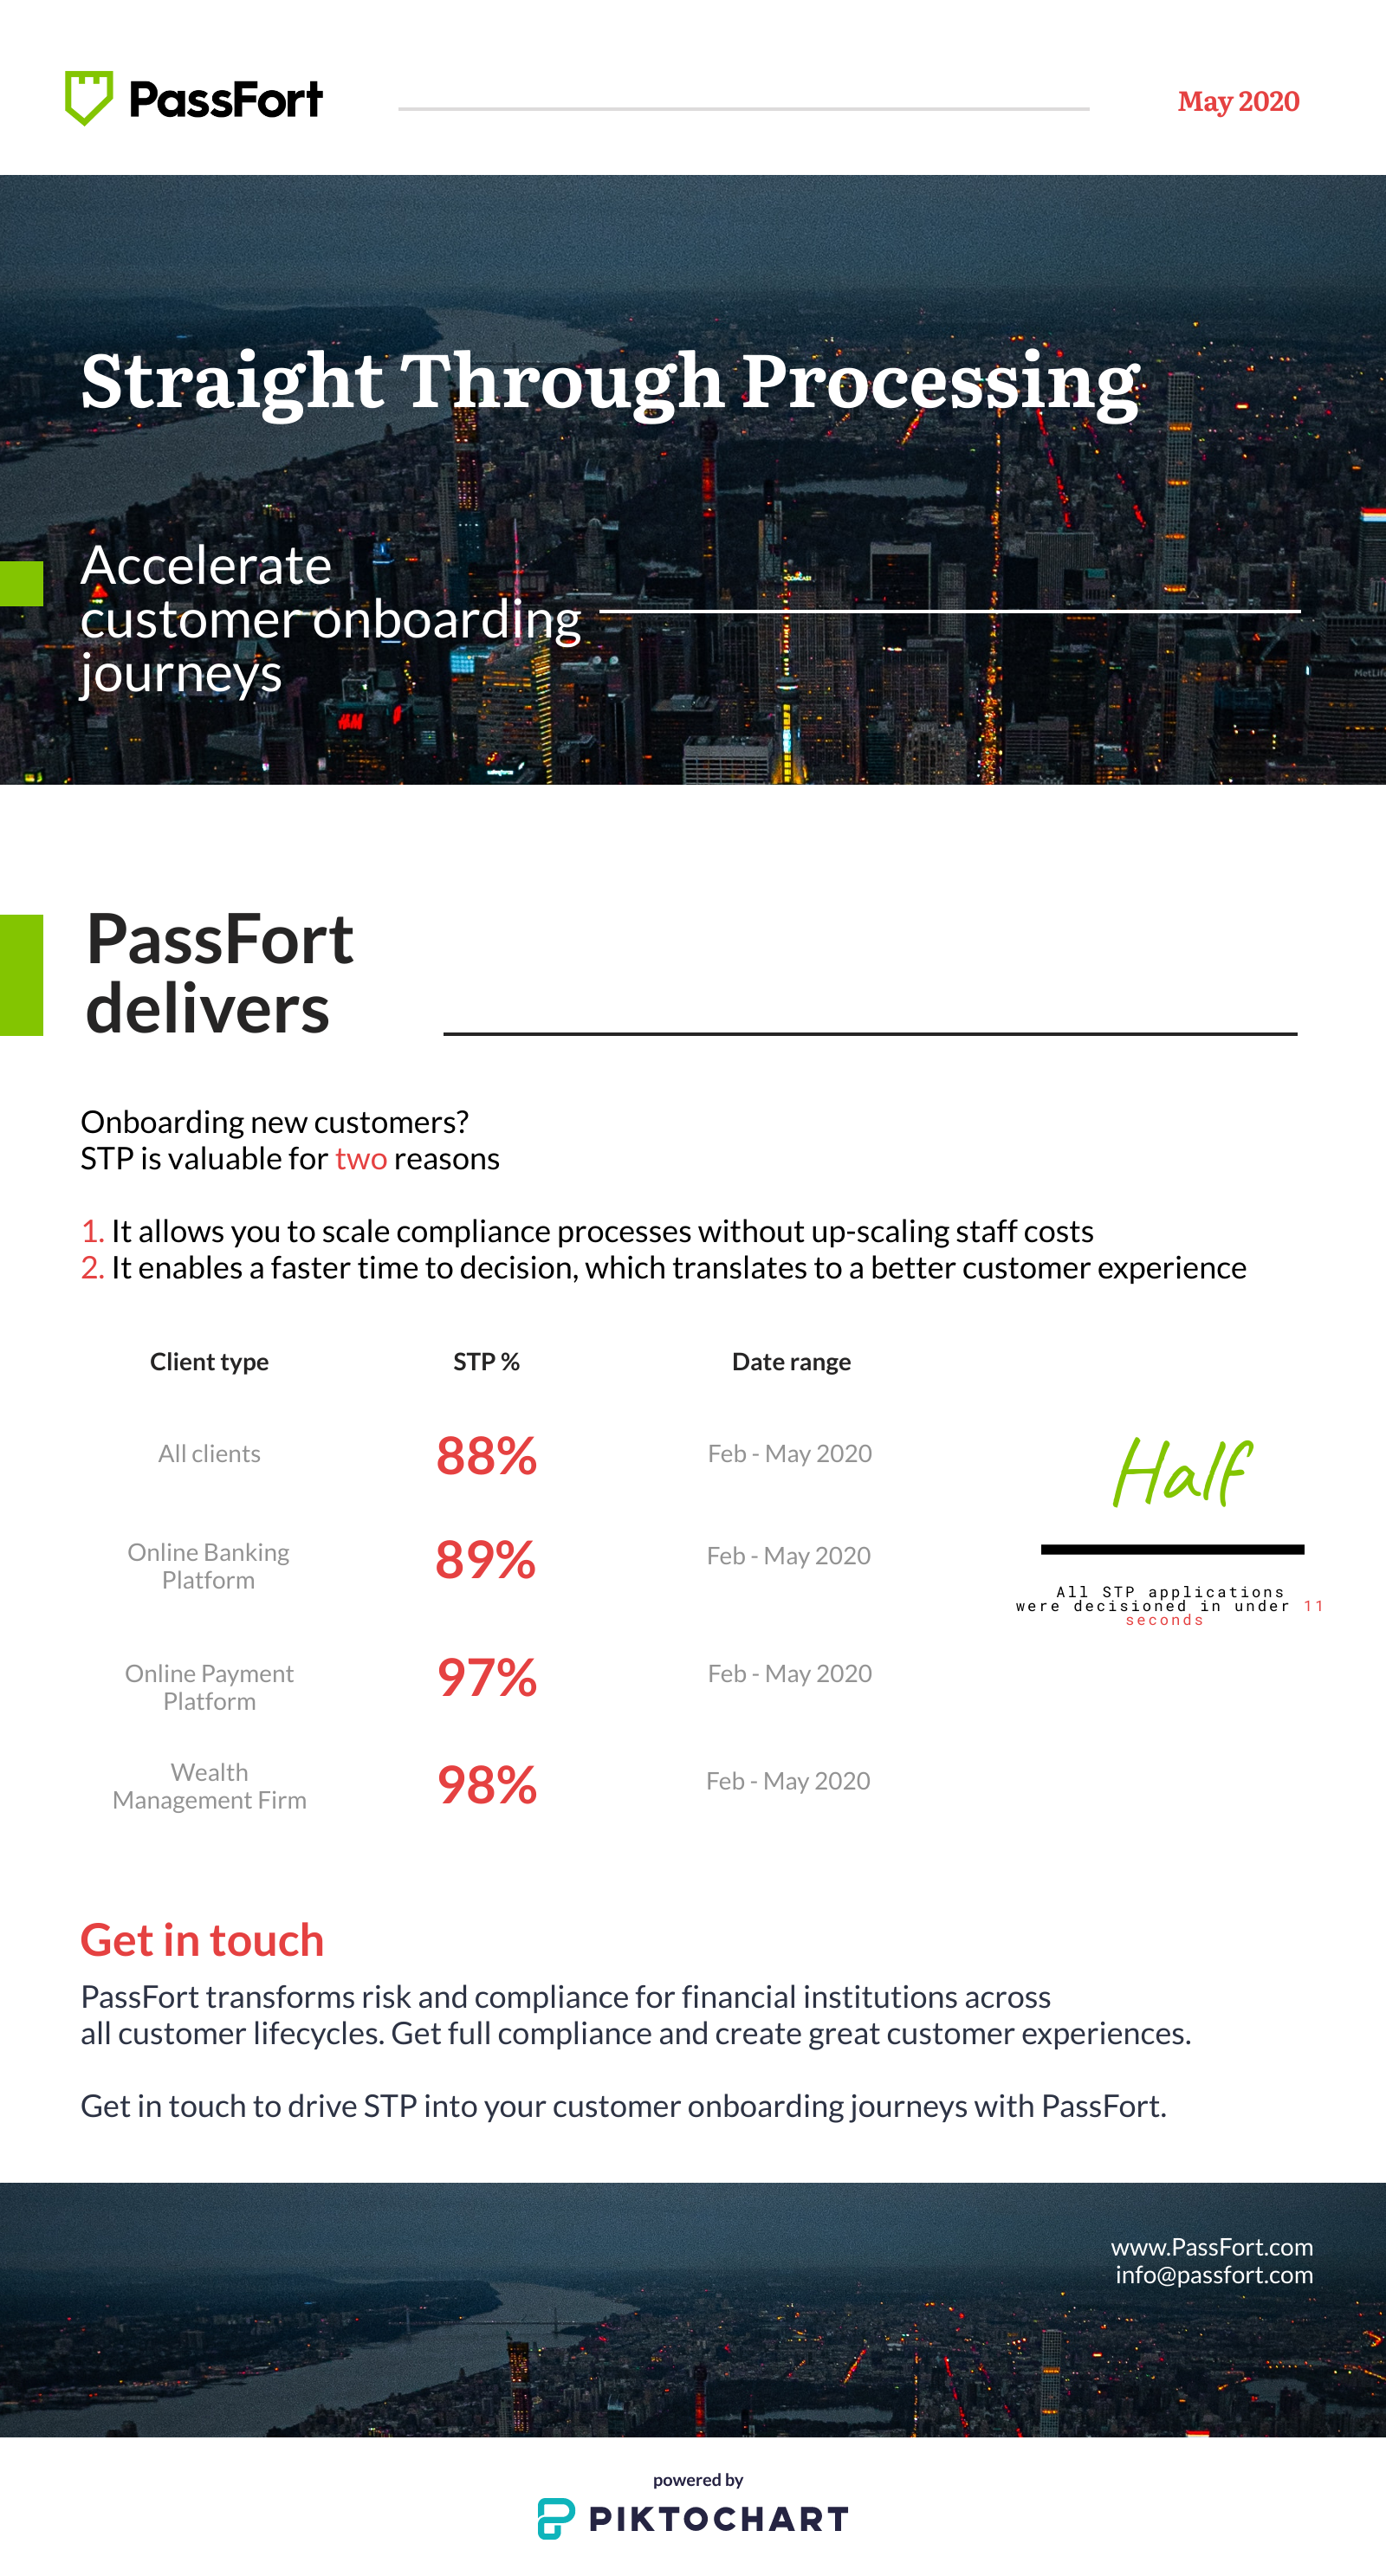 PassFort delivers STP